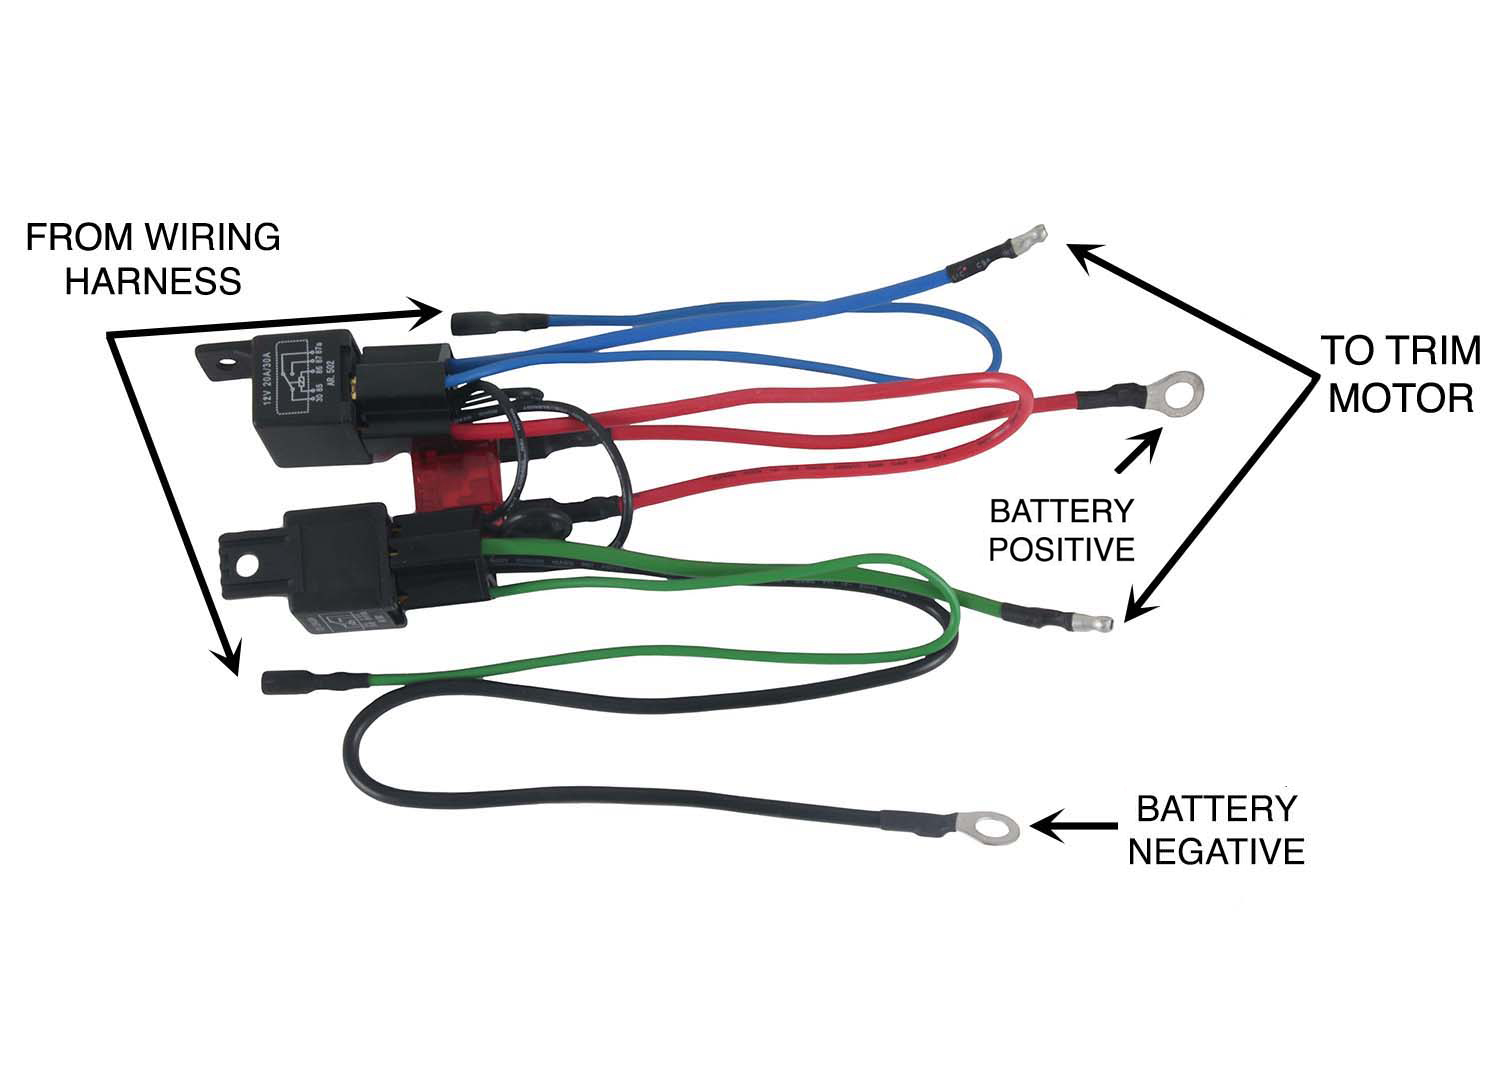 NEW WIRING HARNESS CONVERT 3 WIRE TILT TRIM MOTOR TO 2 WIRE 30 AMP FUSE 2  RELAYS - Walmart.com